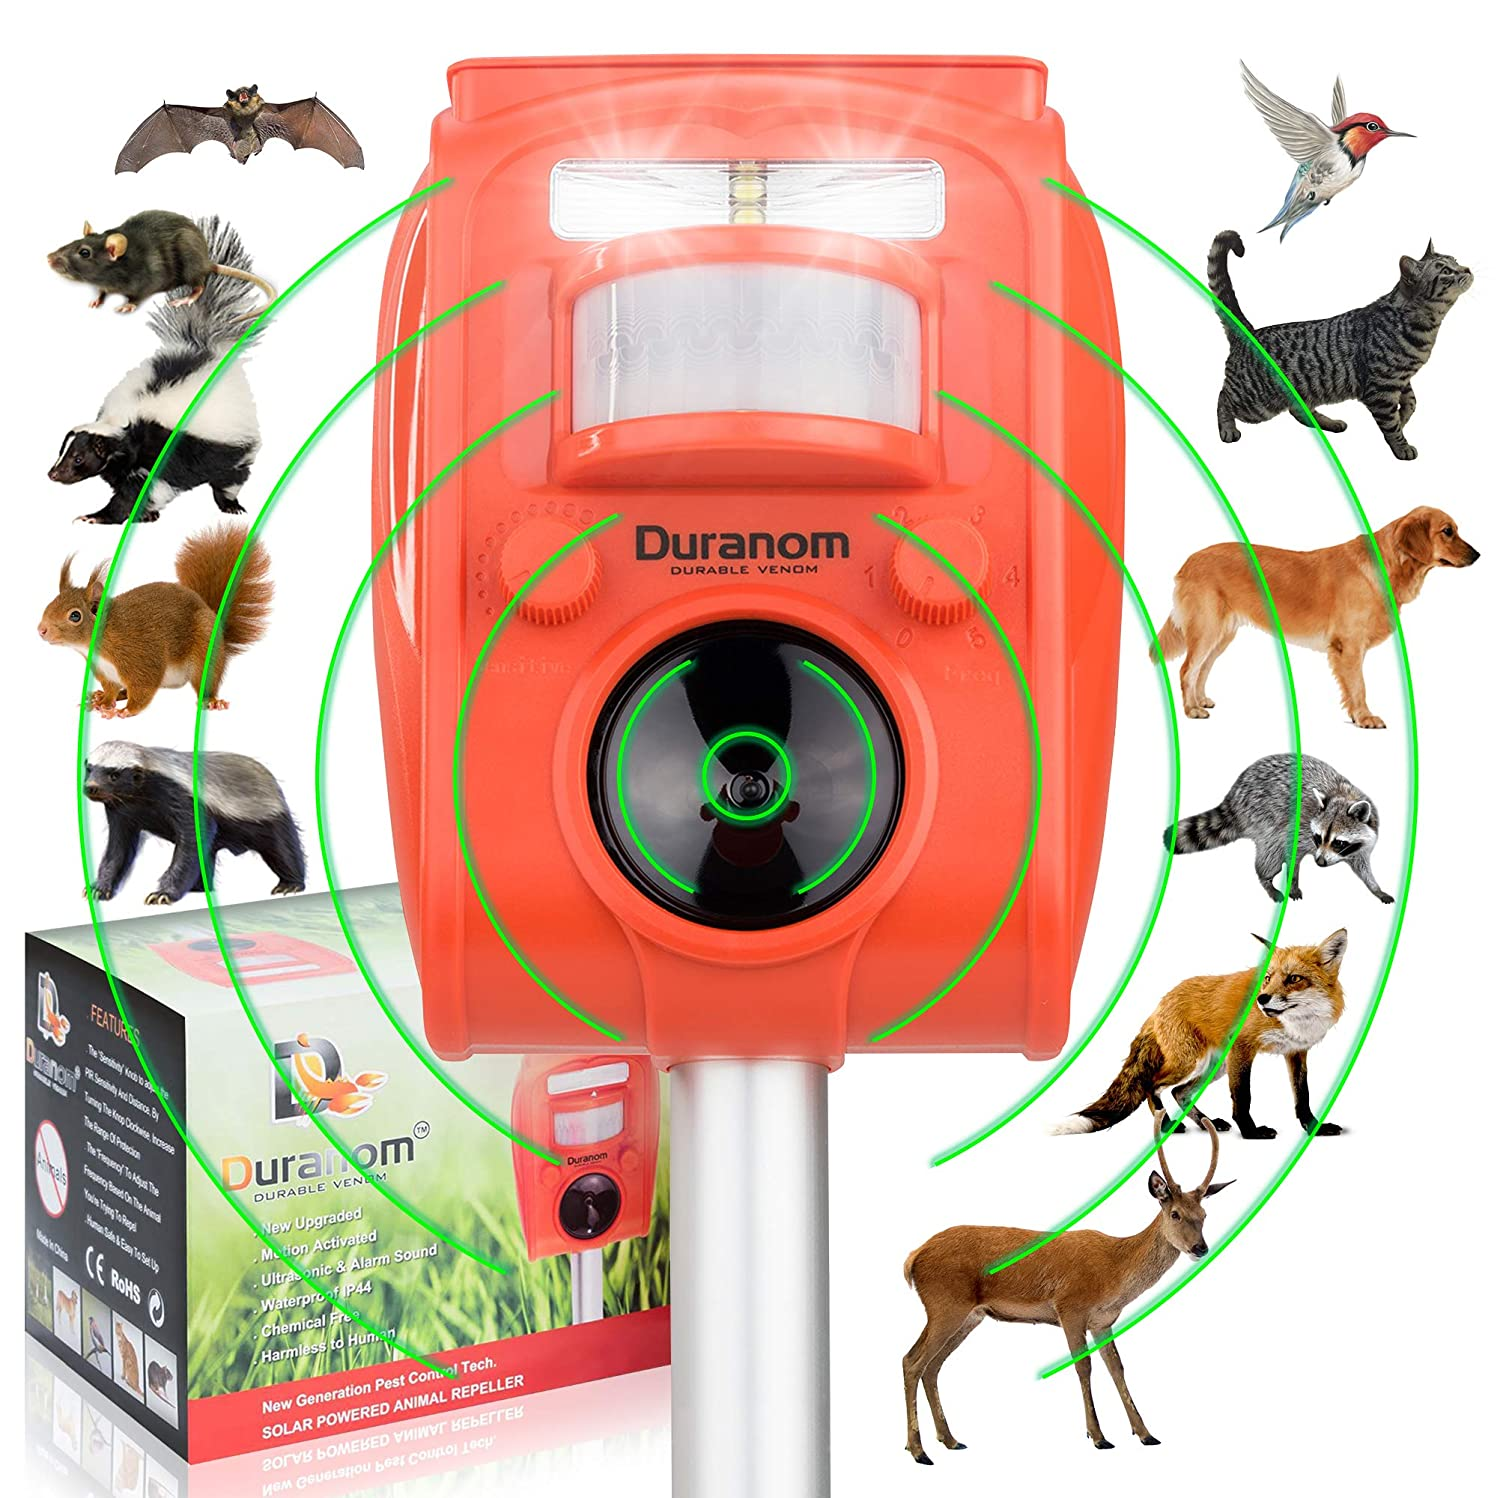 DURANOM Ultrasonic Animal Repeller Outdoor - Solar Powered Cat Deer Repellent - Motion Sensor Activated Alarm Sound - Pest Strobe Light Electronic Deterrent - Flashing Led Birds Chaser Device